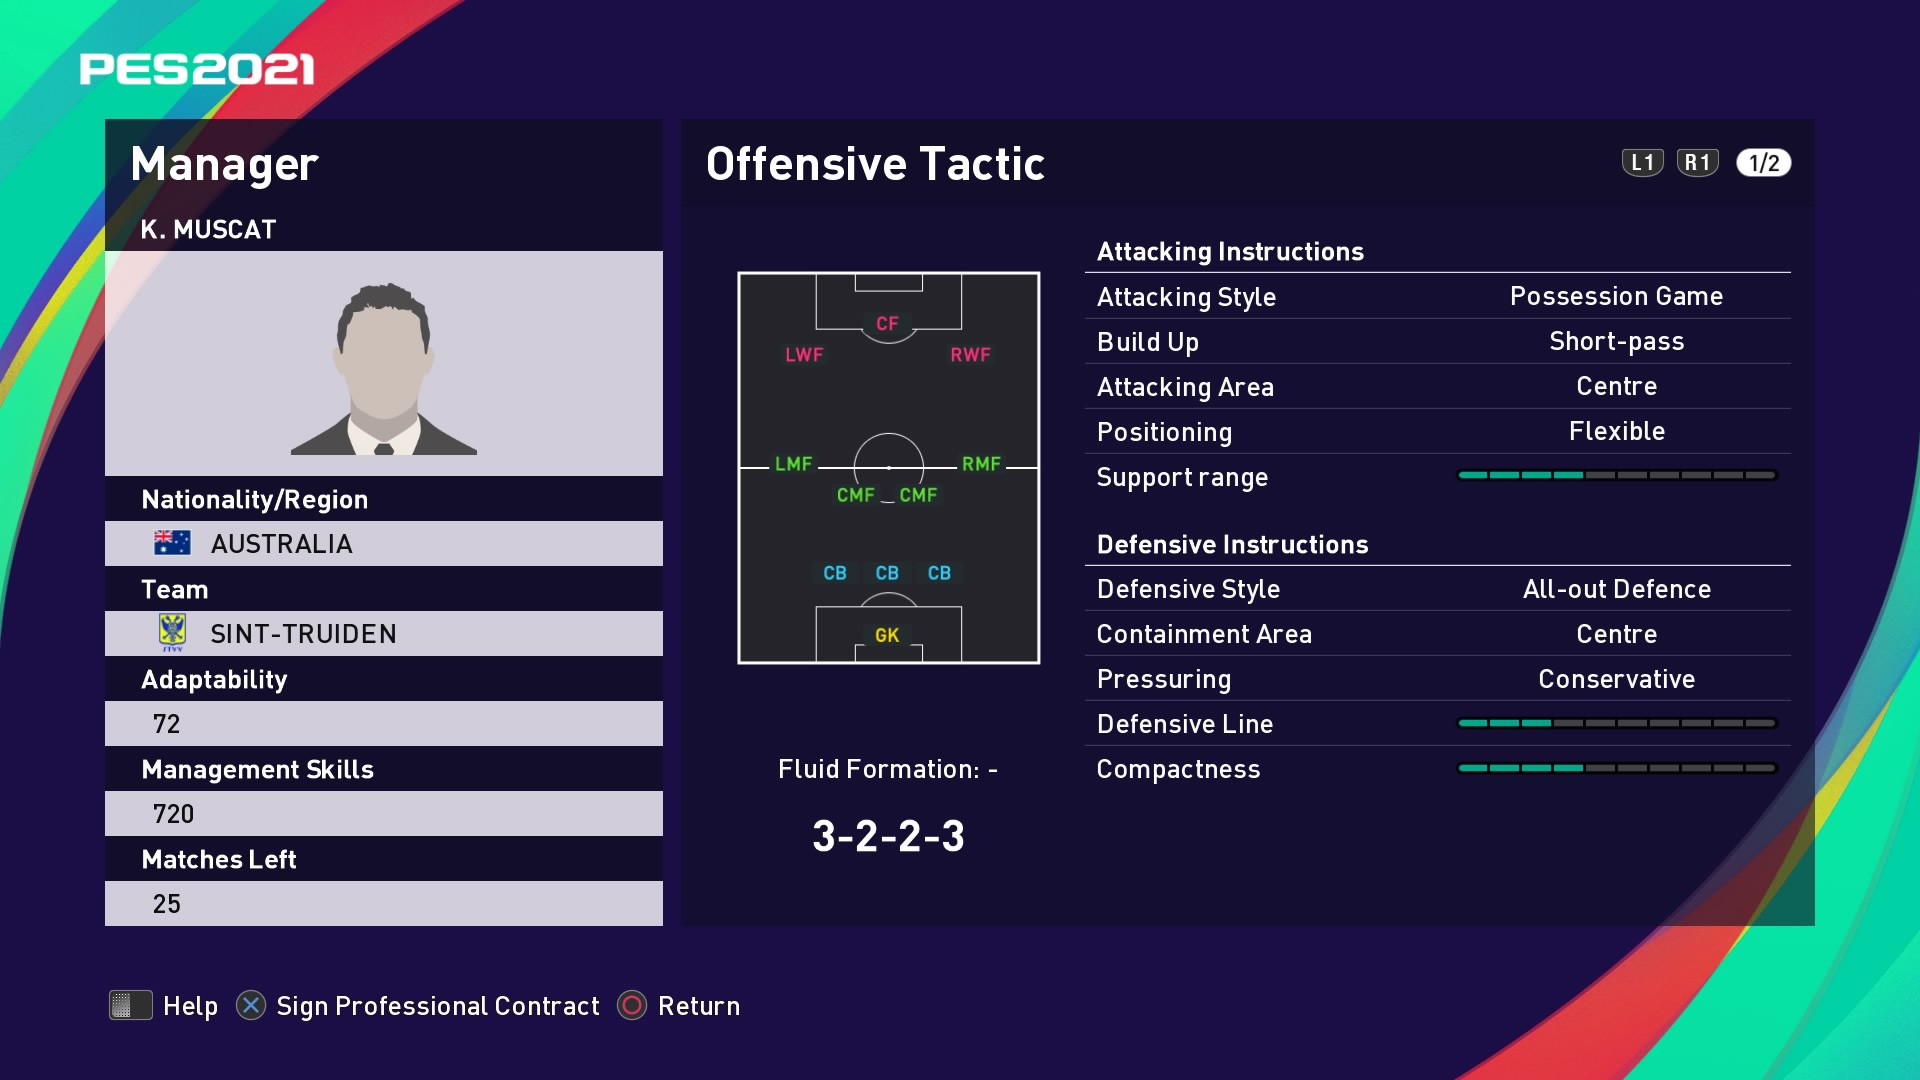 K. Muscat (2) (Kevin Muscat) Offensive Tactic in PES 2021 myClub